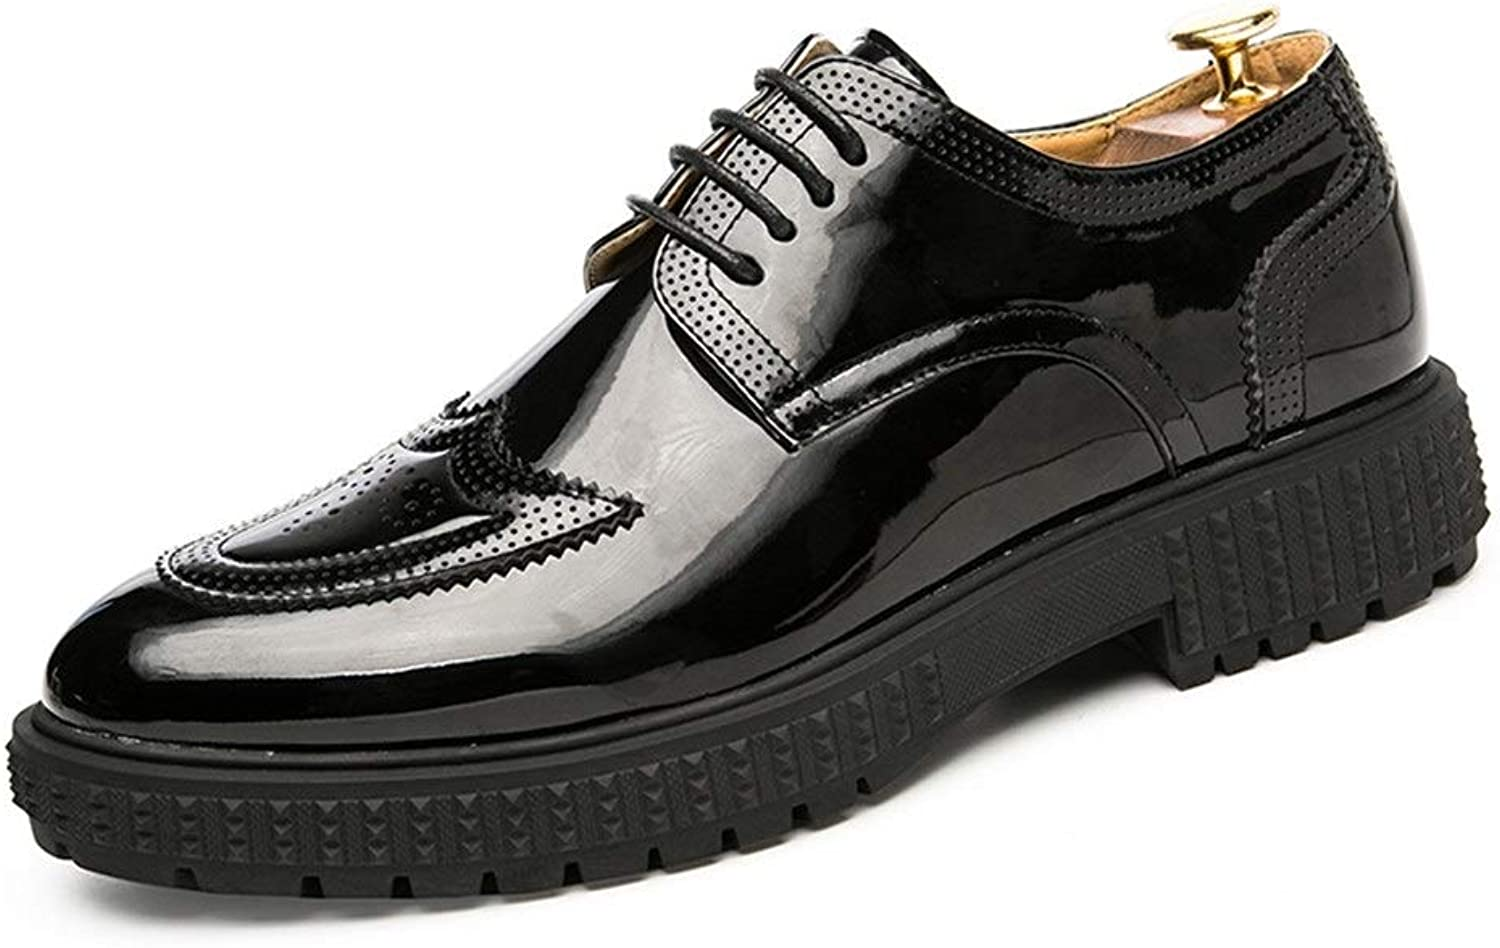 Easy Go Shopping Oxford shoes For Men Brogue shoes Lace Up PU Leather Classic Engraved Outsole Patent Leather Cricket shoes (color   Black, Size   8.5 UK)